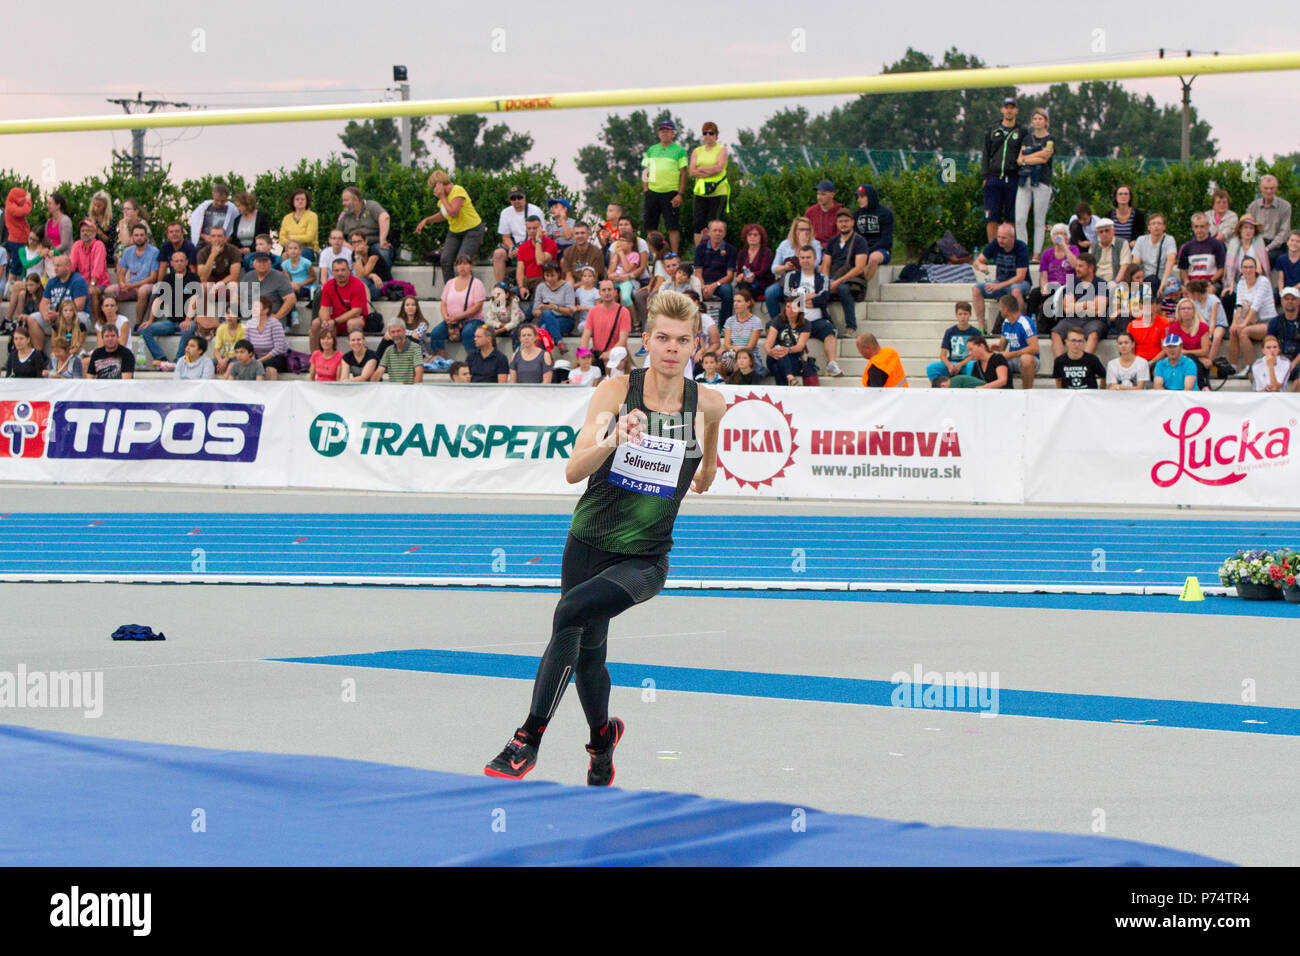 Belarusian high jumper Pavel Seliverstau competing at the P-T-S athletics meeting in the sports site of x-bionic sphere® in Samorín, Slovakia - Stock Image